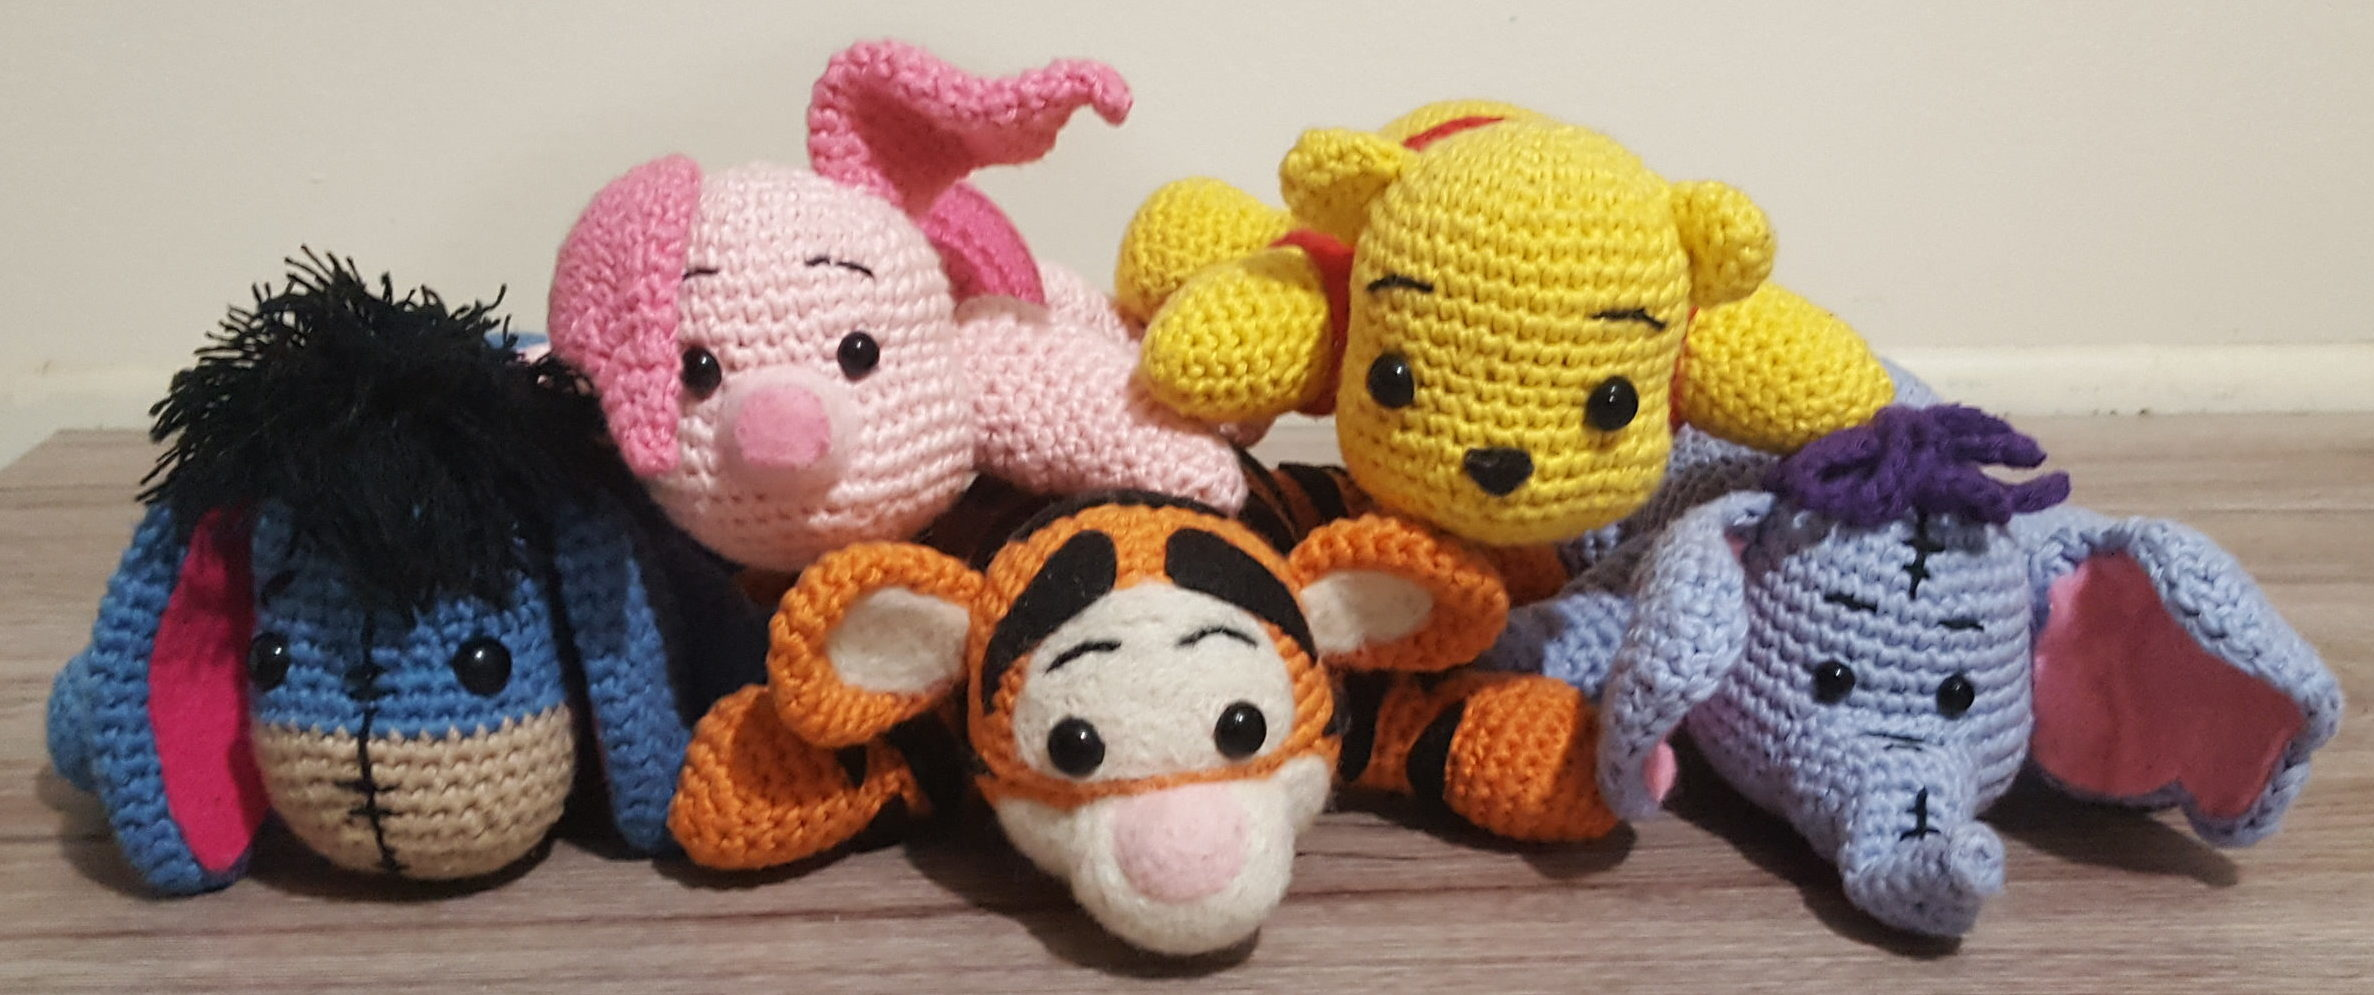 Amigurumi Eeyore Donkey Crochet Free Patterns – Crochet & Knitting ... | 995x2374